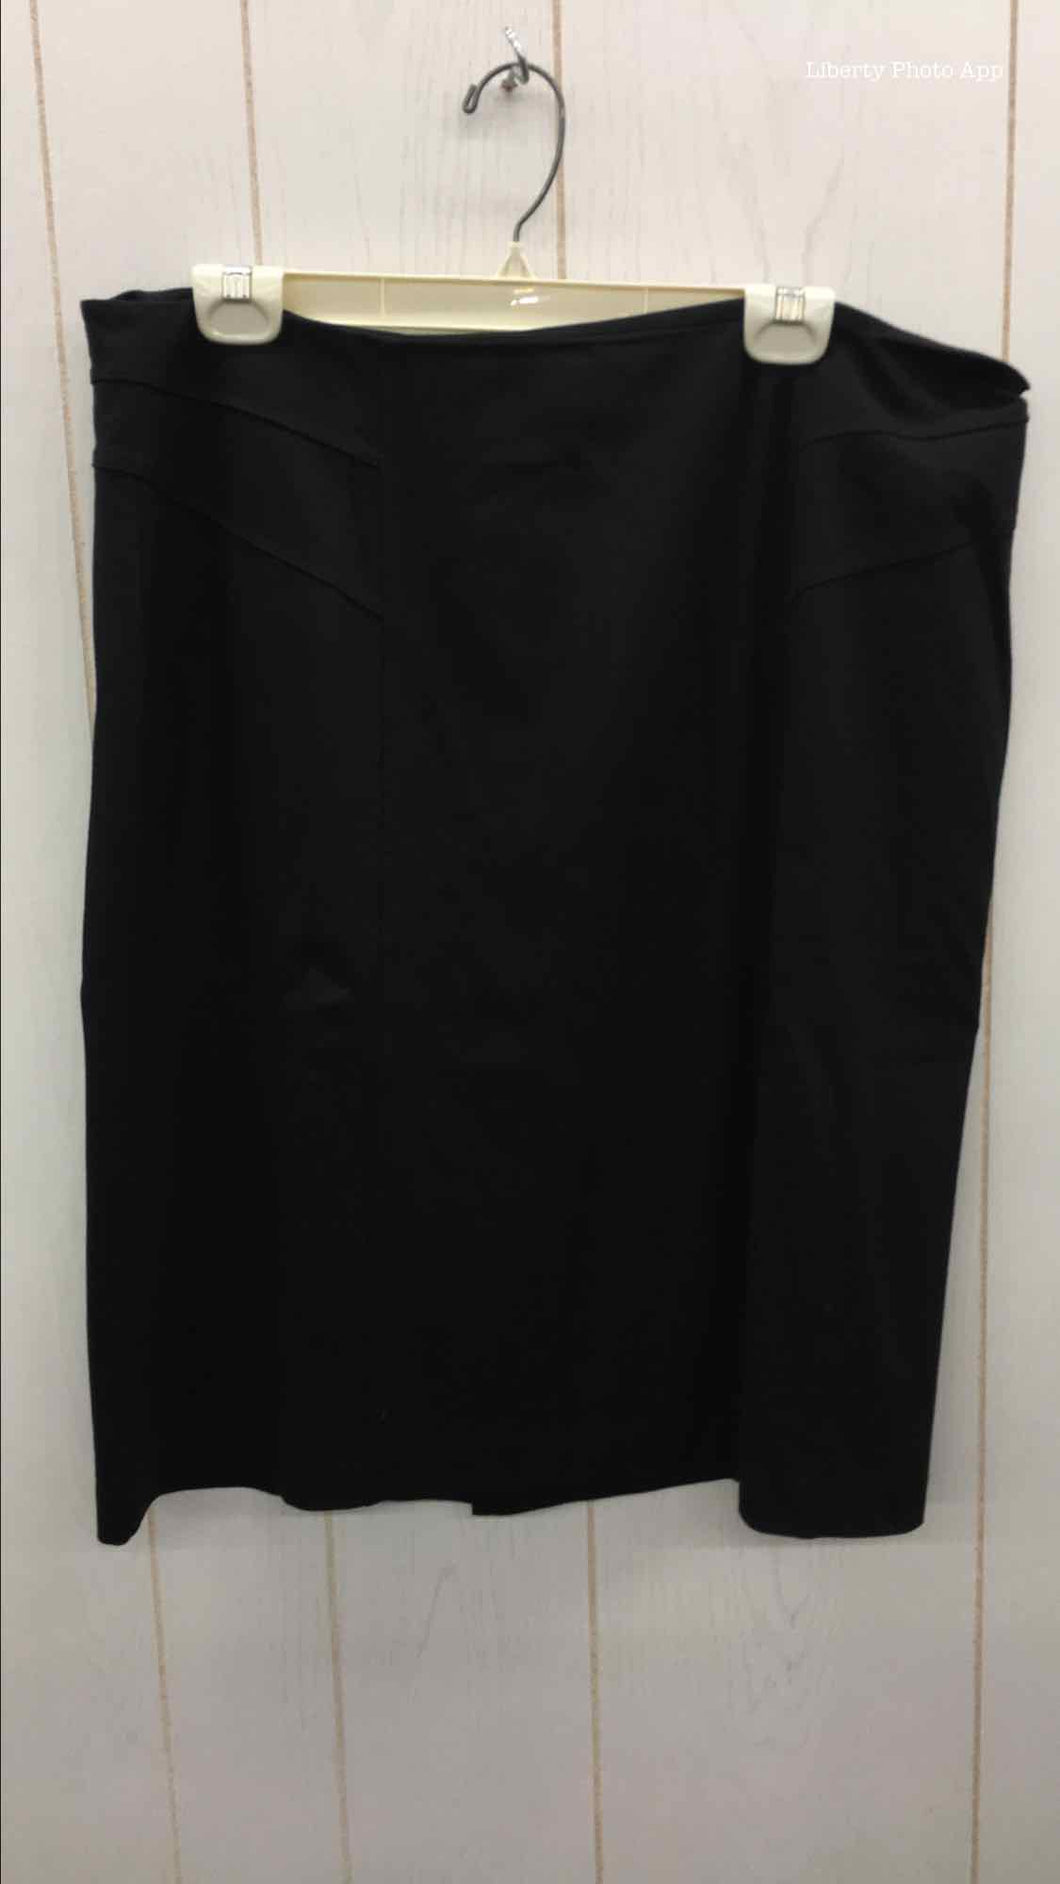 Chico's Black Womens Size 14 Skirt